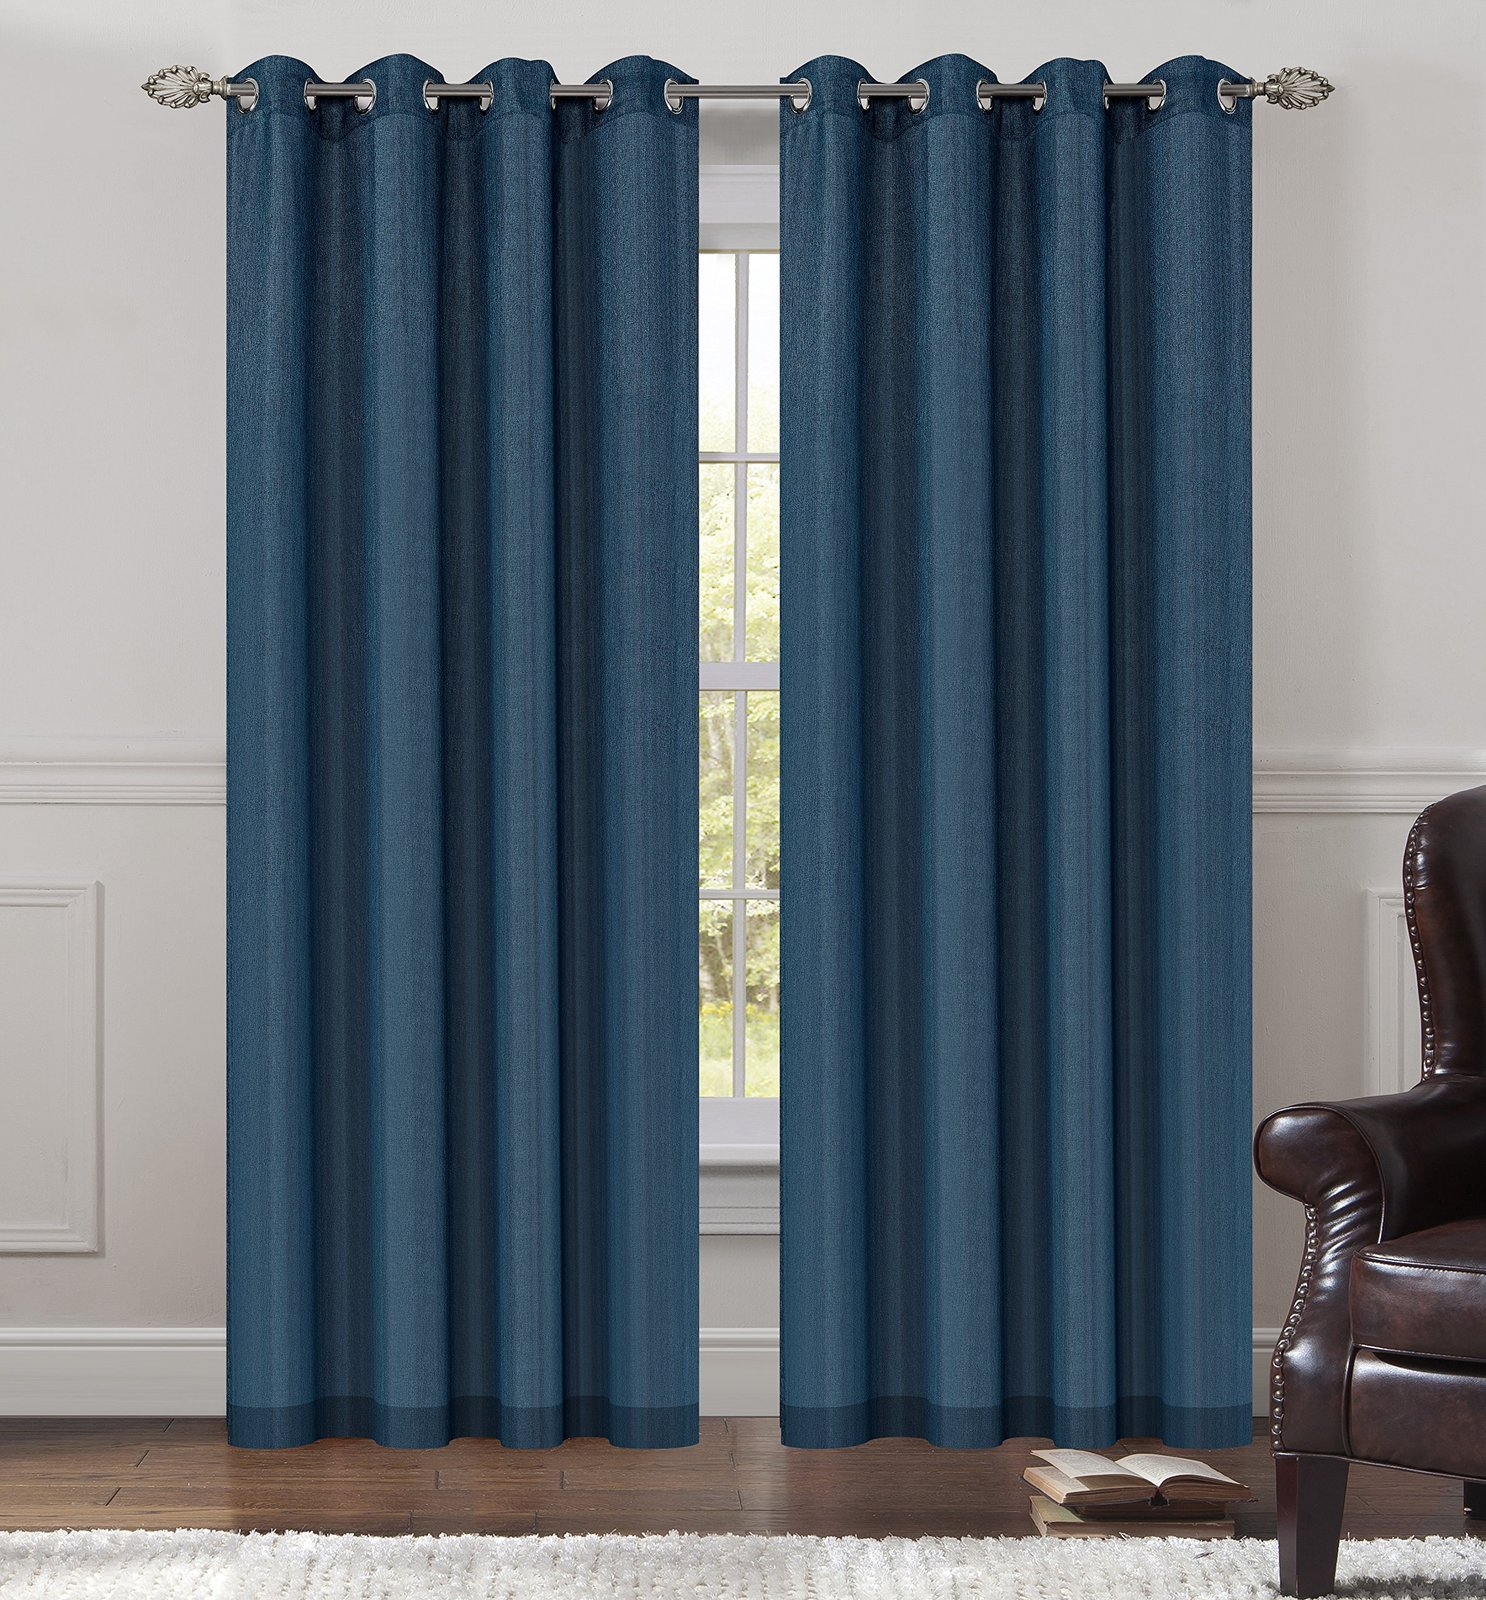 Urbanest 54-inch by 63-inch Tweed Set of 2 Sheer Drapery Curtain Panels with Gro image 2